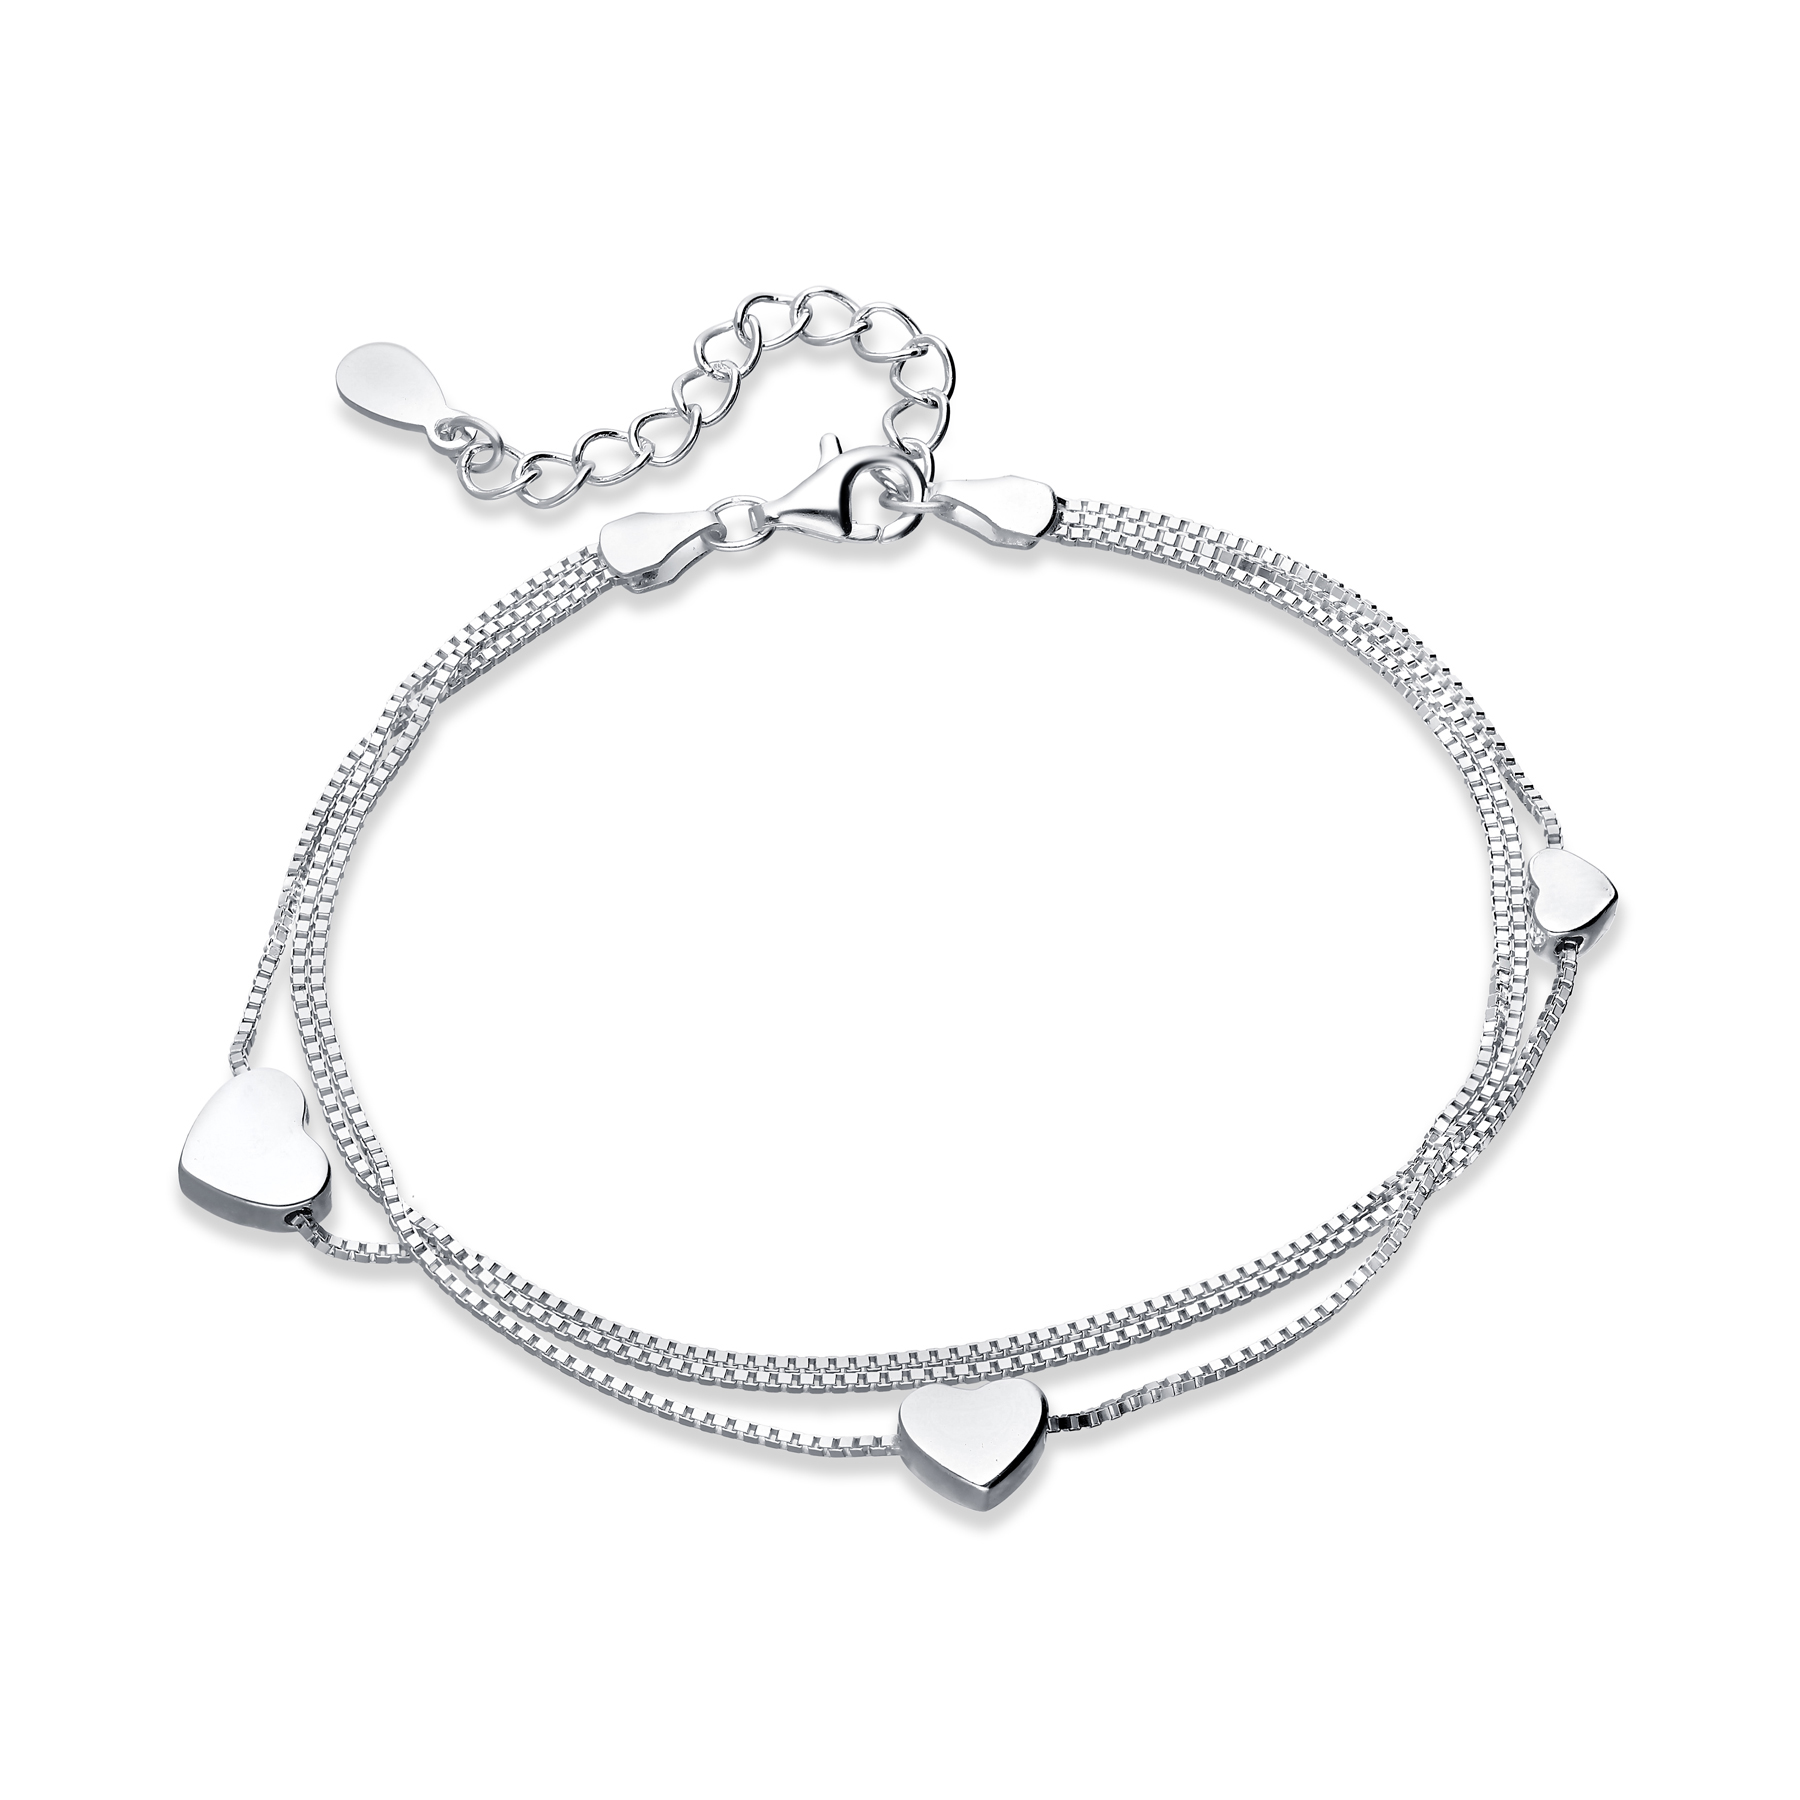 706-22161 - 925 Sterling Silver Bracelet With Heart Charms